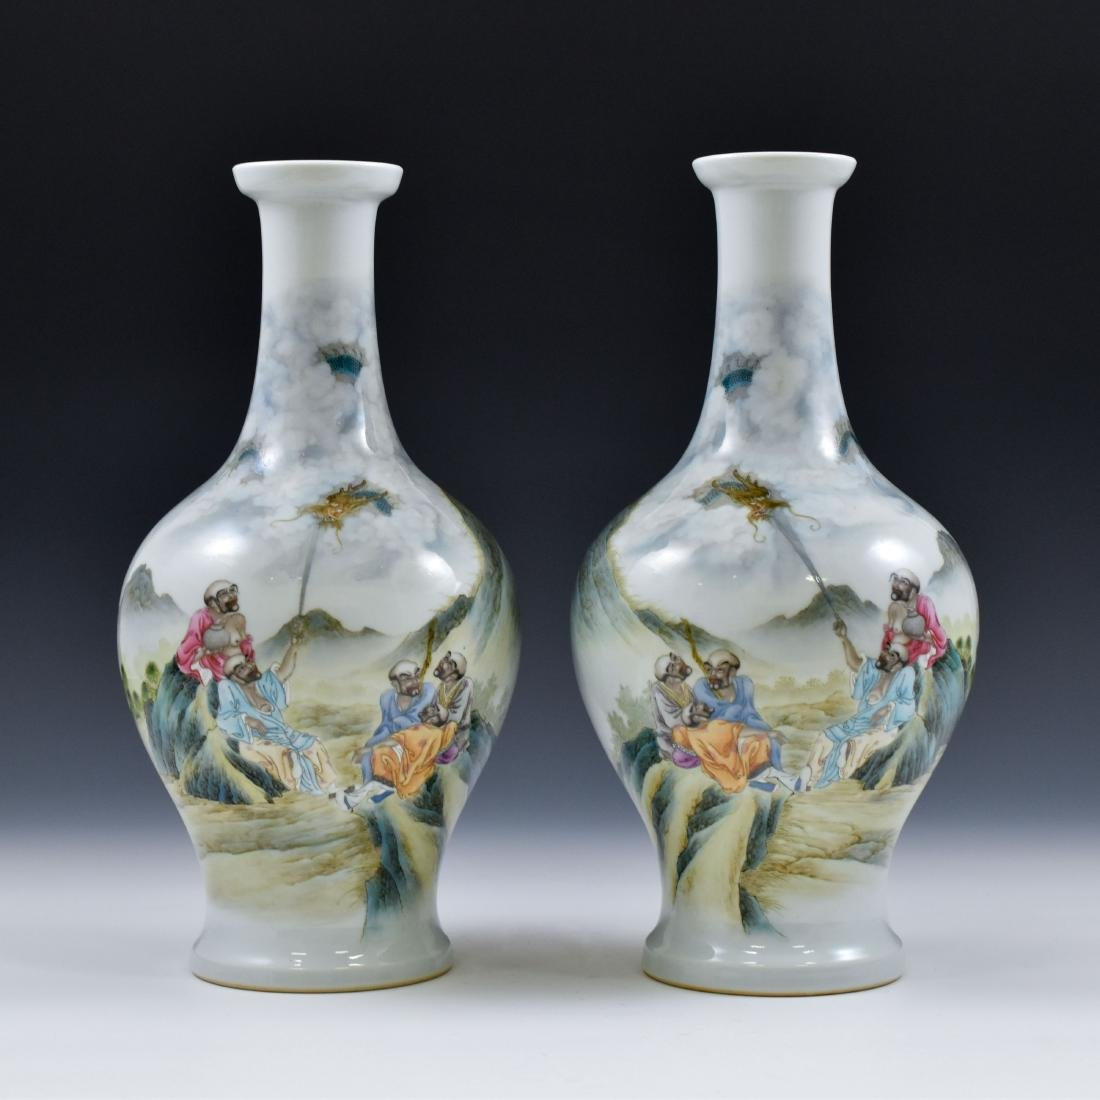 PAIR OF WILLOW LEAF PORCELAIN VASES